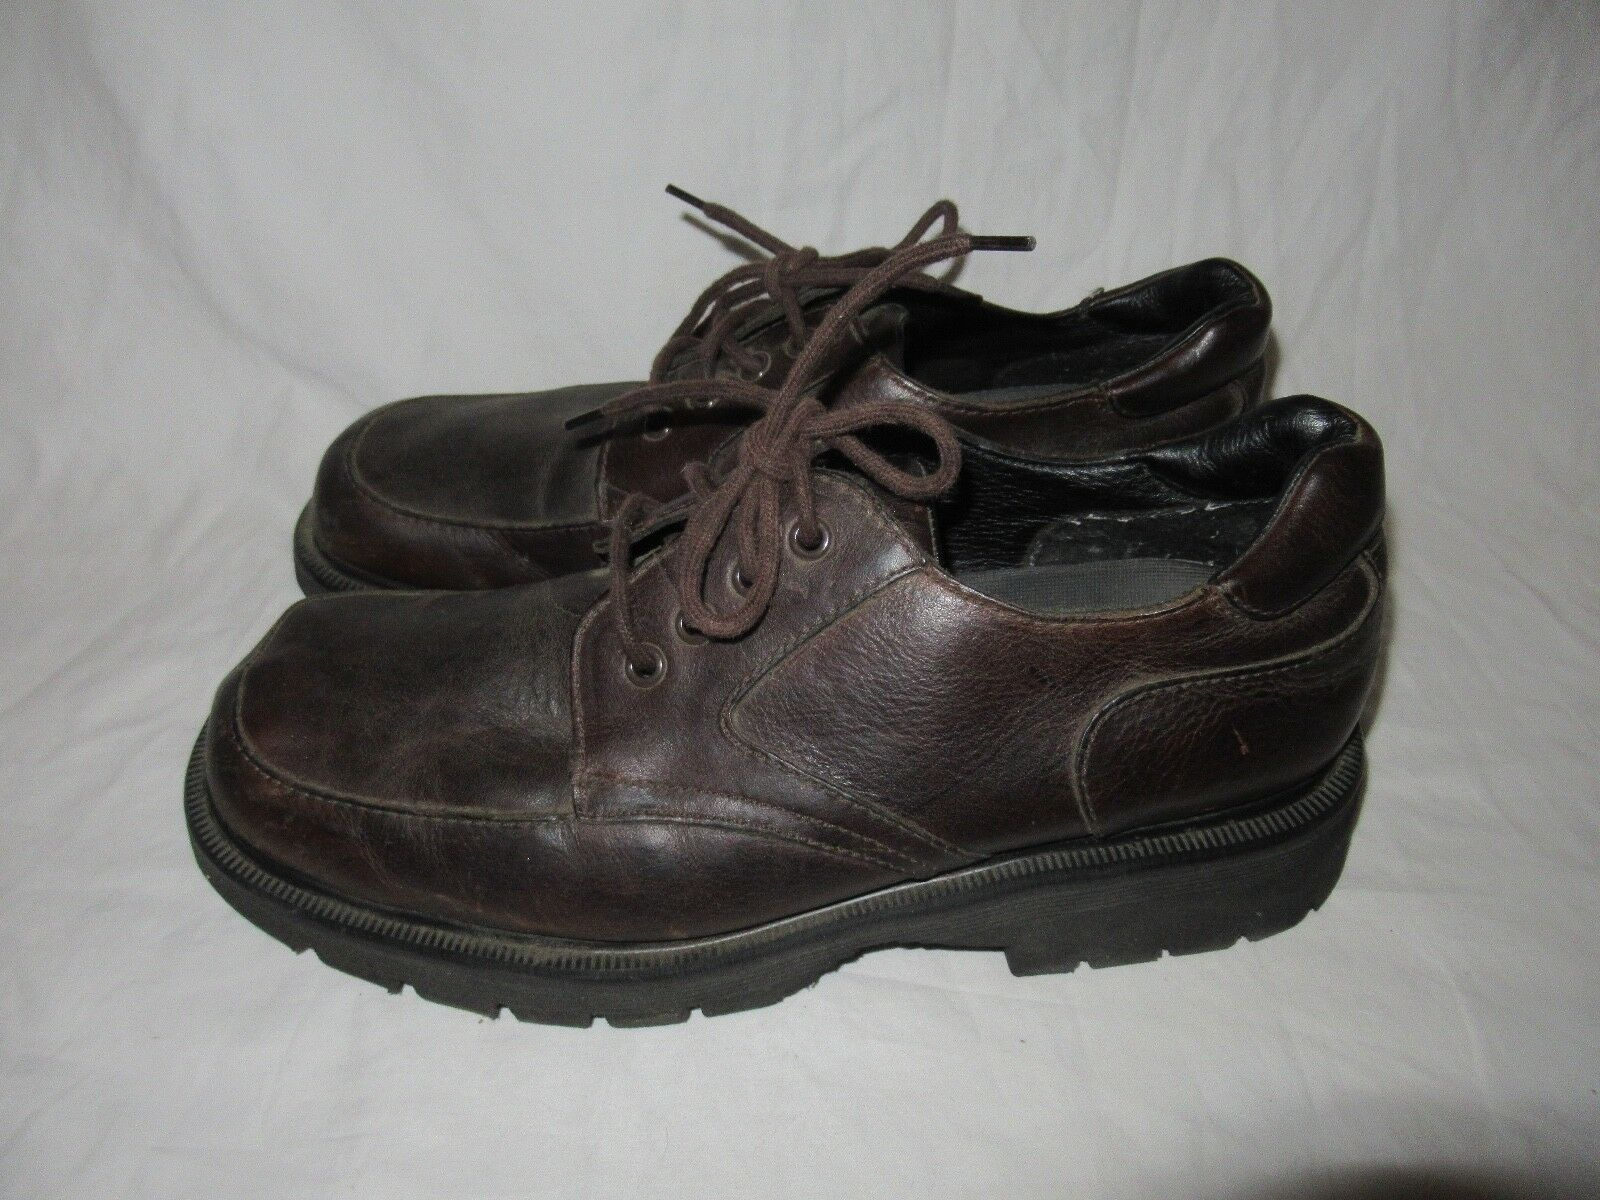 Dr. Doc Martens 9260 Made in England 4 Eye Brown leather shoes Men Size 10 USA